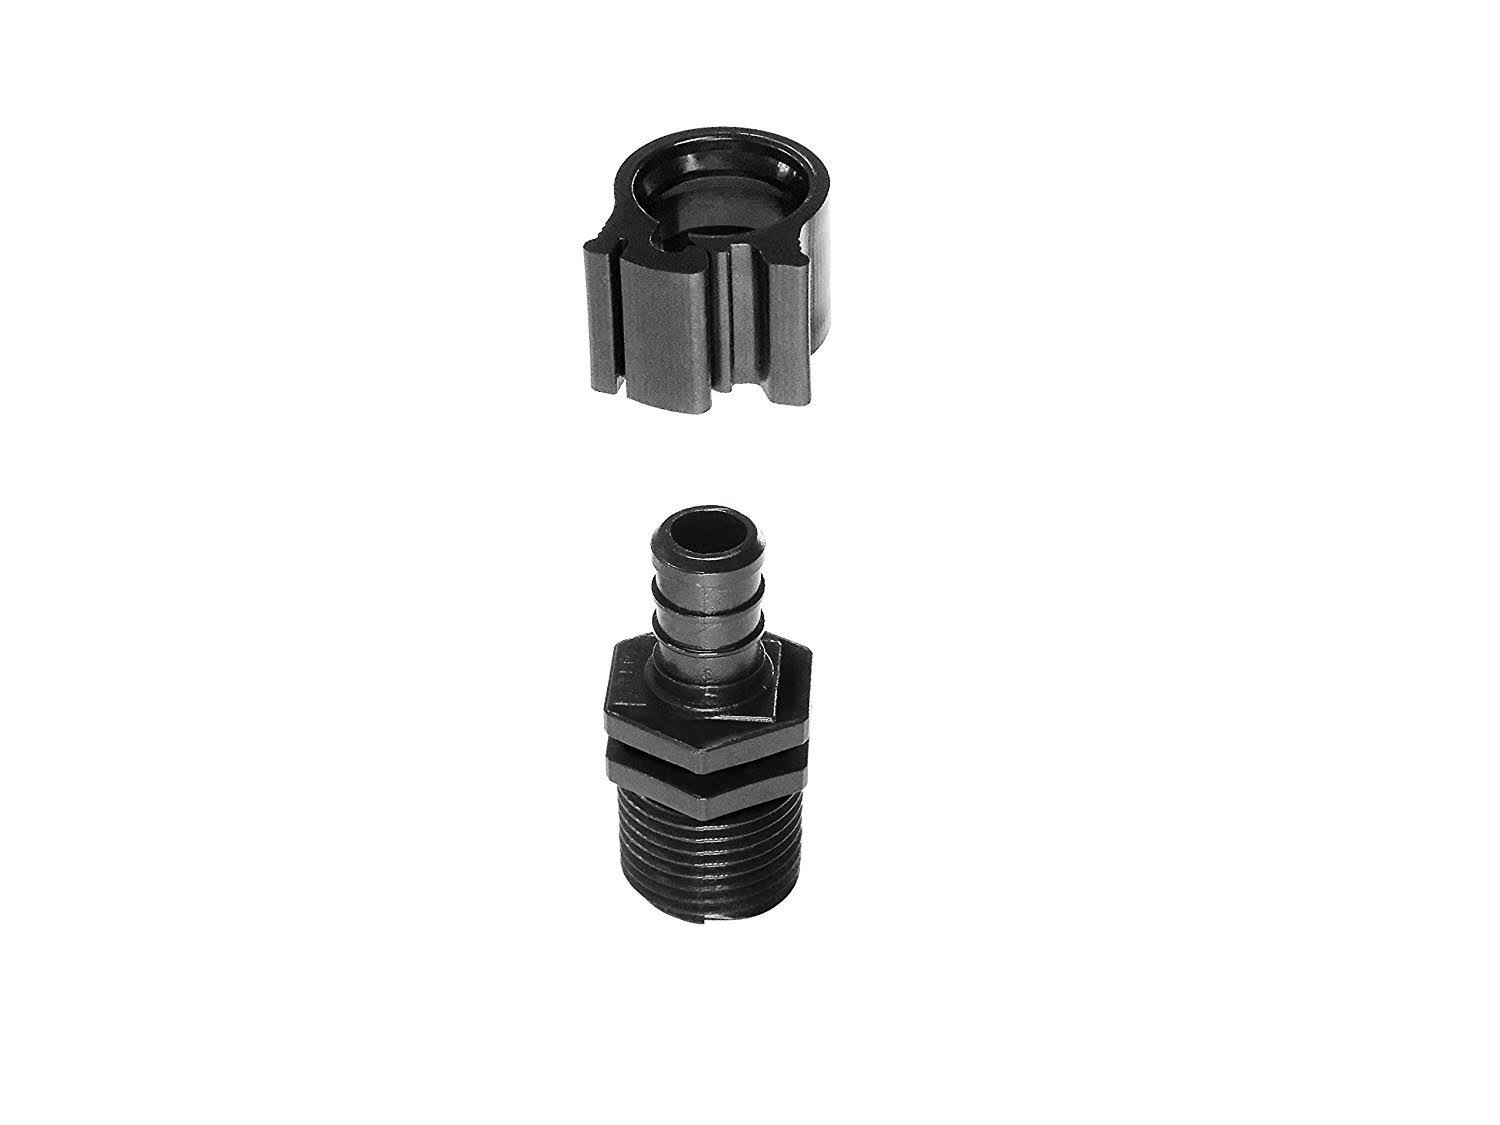 Pexlock 30842 Flair It Male Adapter - Black, 1/2""